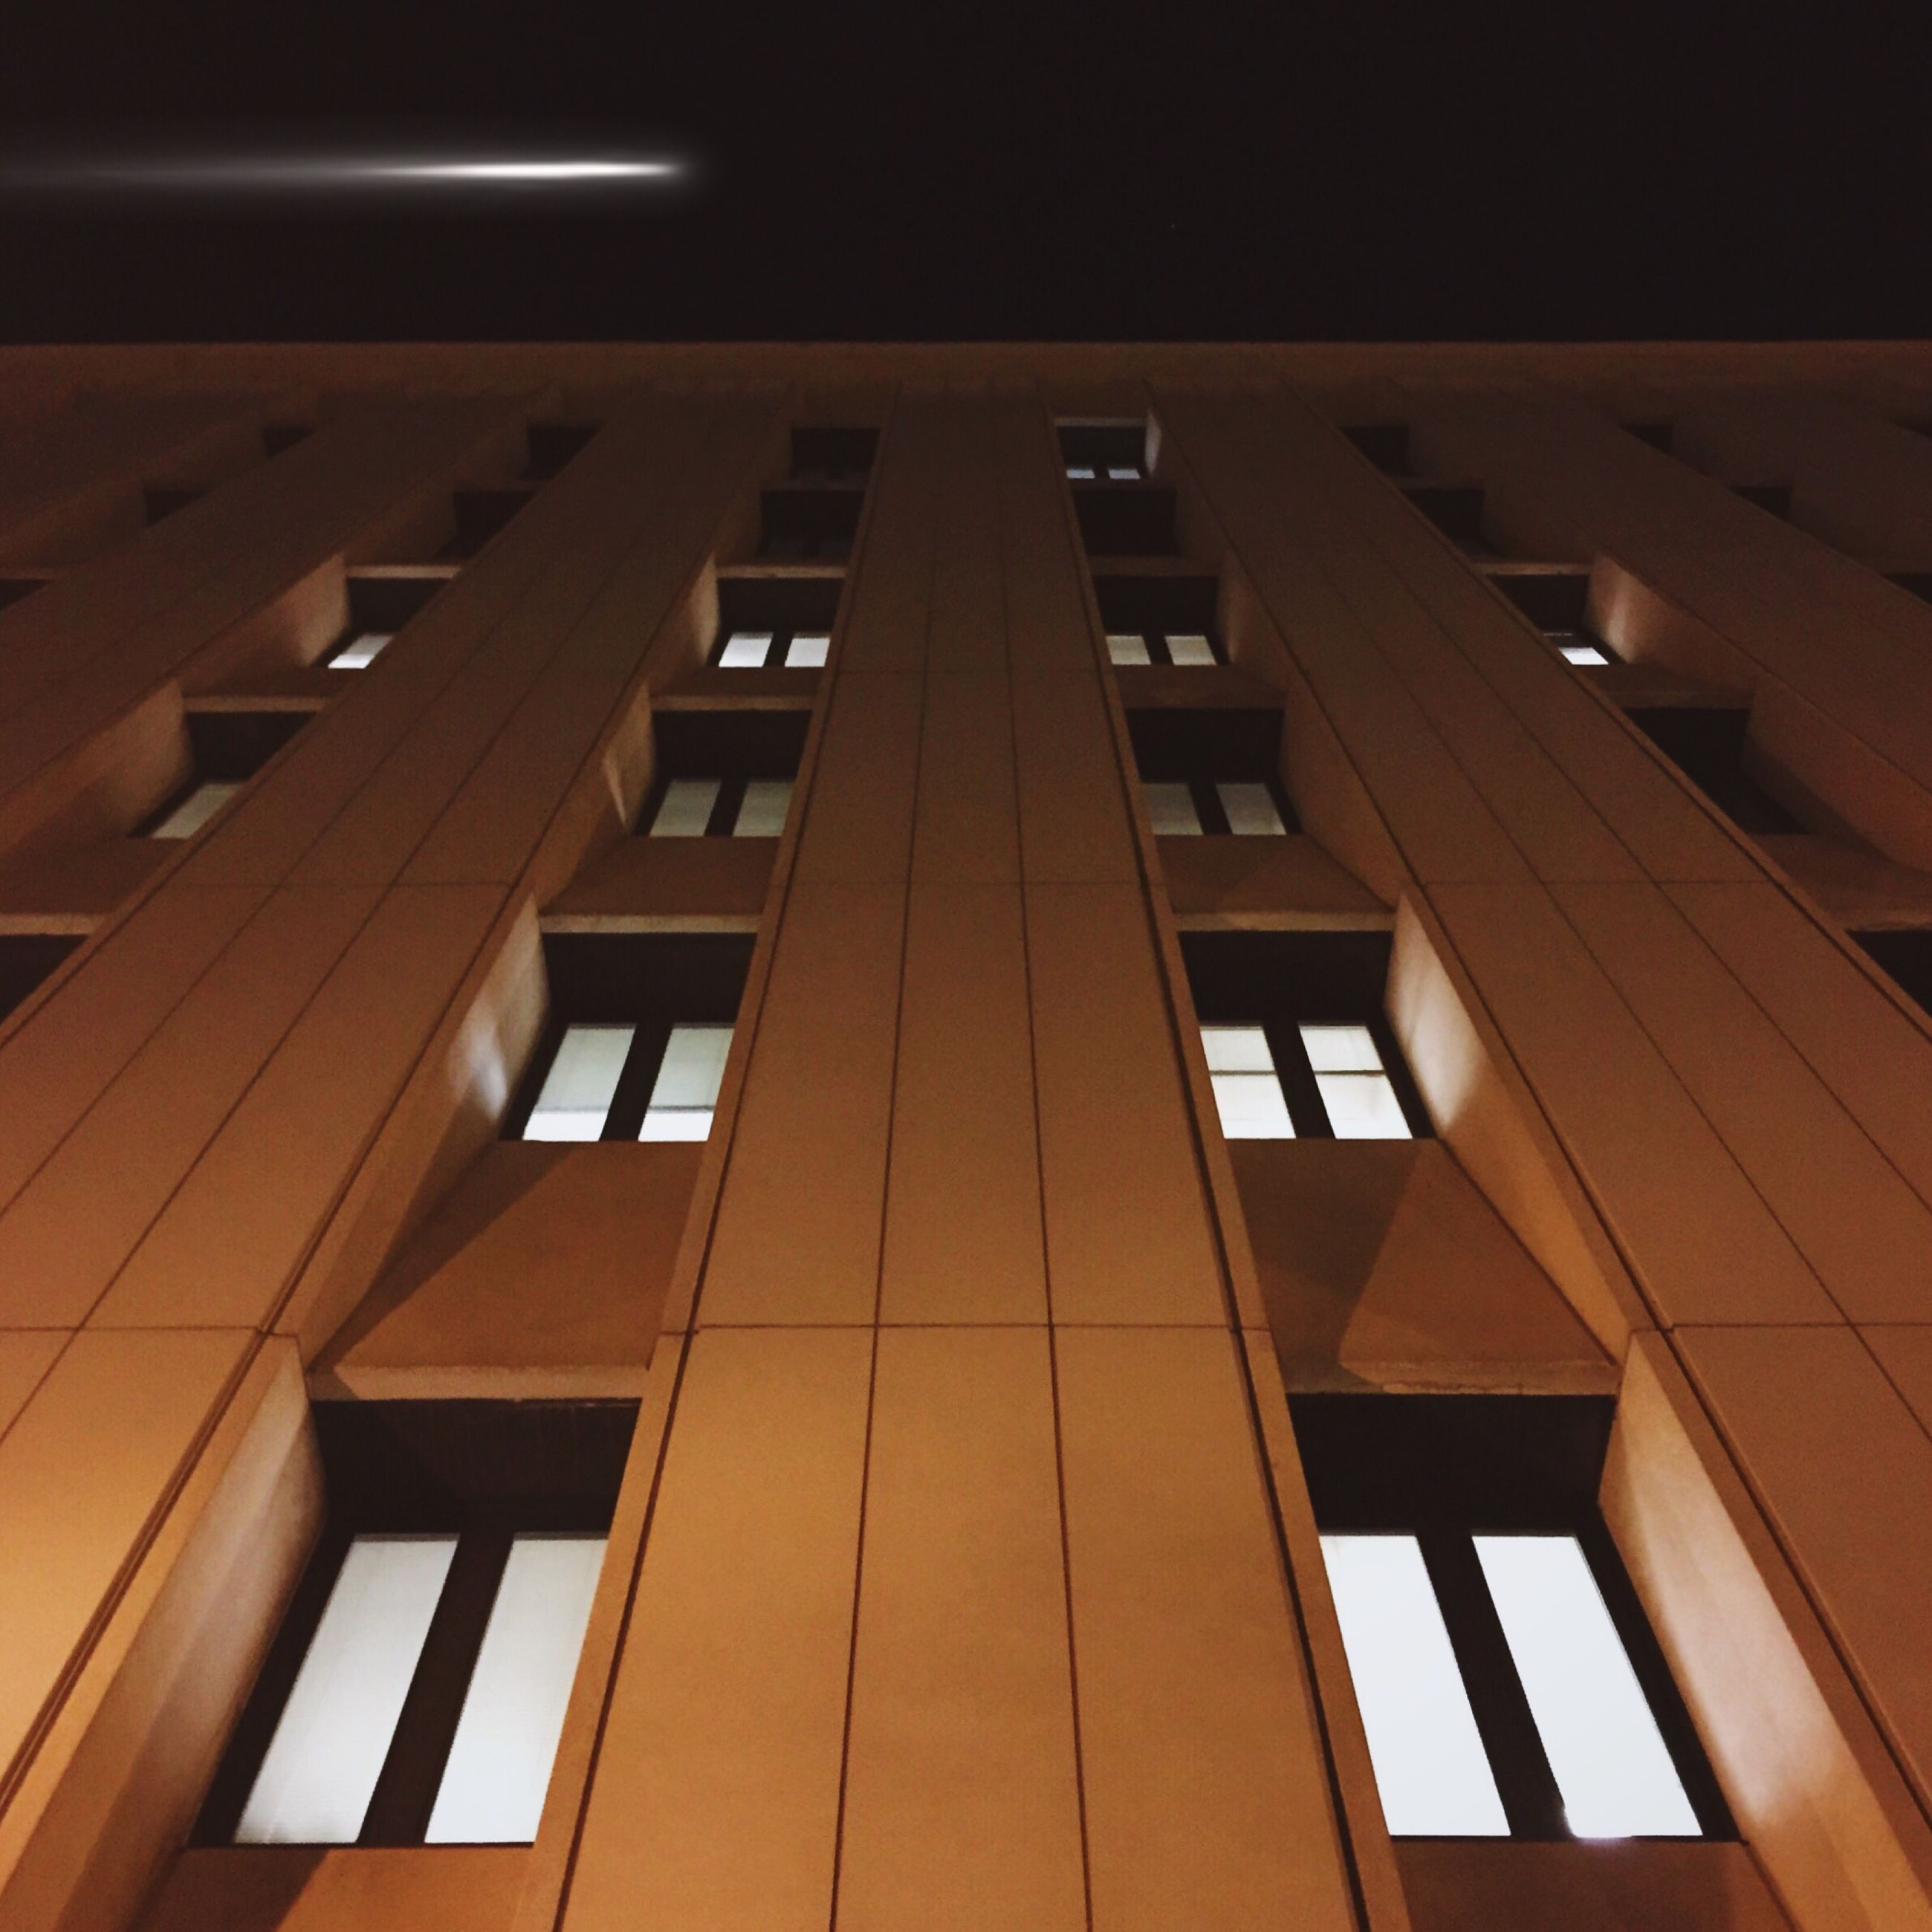 architecture, low angle view, built structure, building exterior, window, building, city, illuminated, residential building, no people, modern, glass - material, night, residential structure, sky, outdoors, office building, directly below, apartment